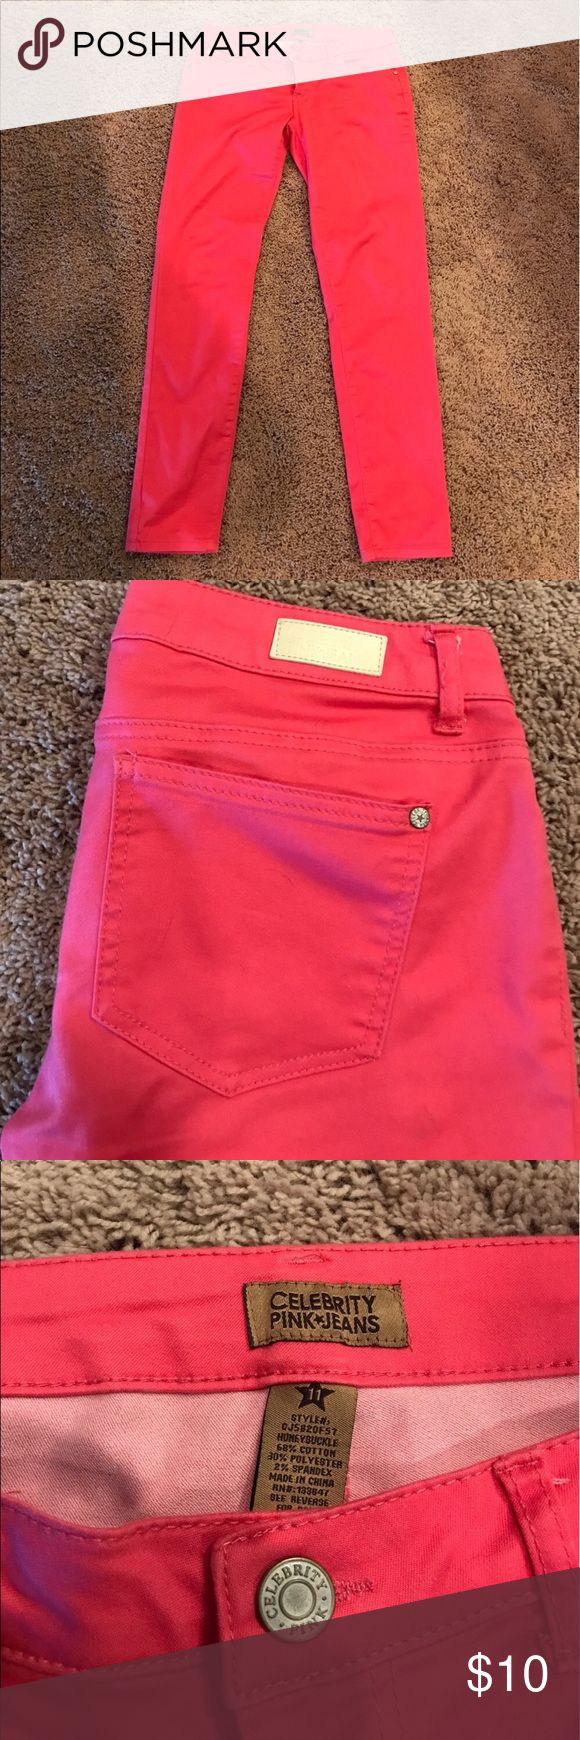 Coral skinny jeans Worn once. Like new! No stains, rips, or wear. Coral. Skinny. Celebrity Pink Jeans Skinny